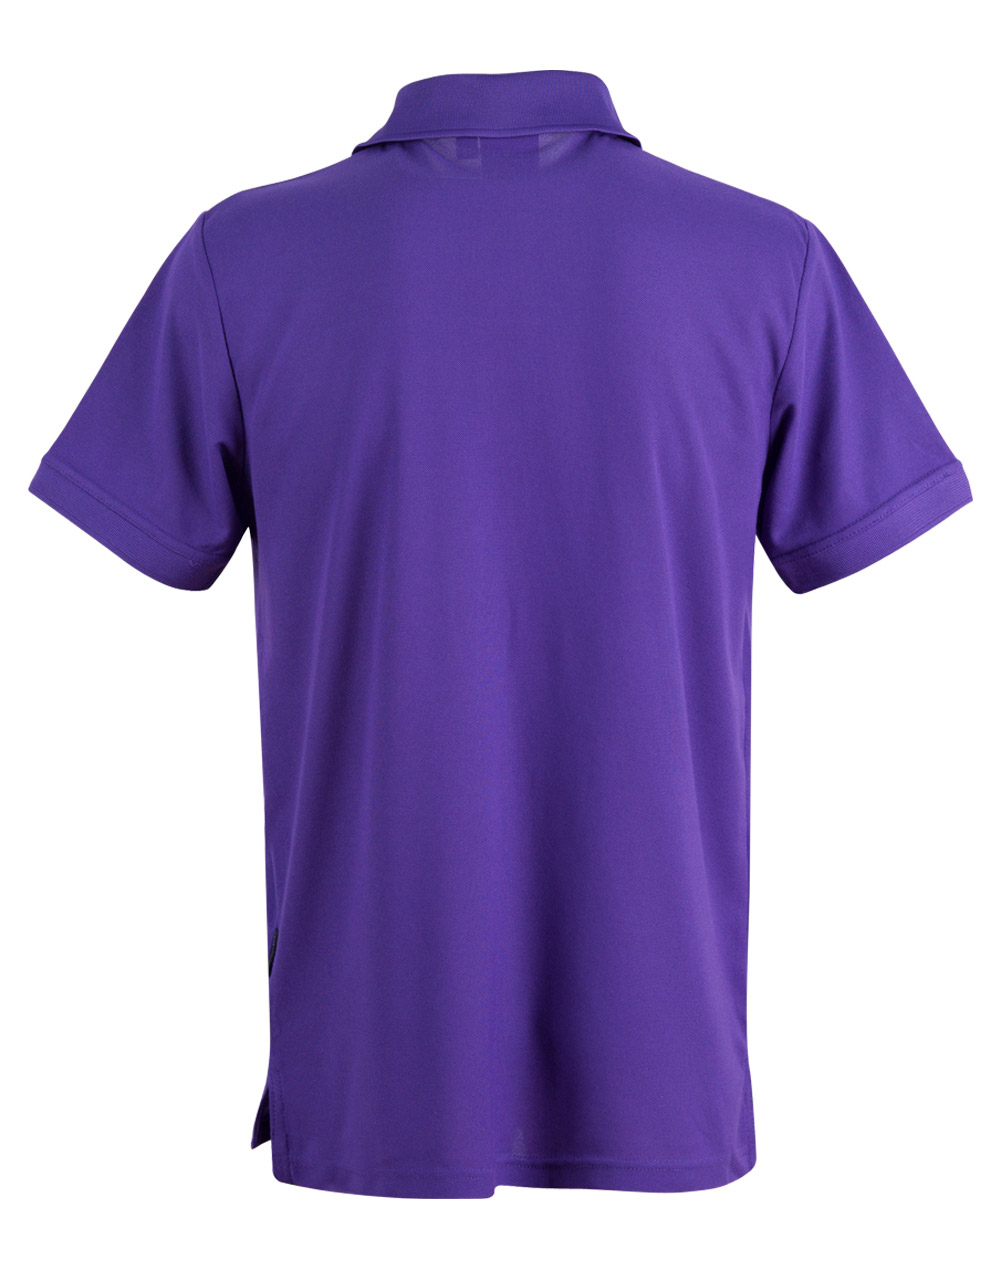 https://s3-ap-southeast-1.amazonaws.com/ws-imgs/POLOSHIRTS/PS63_Purple_Back.jpg